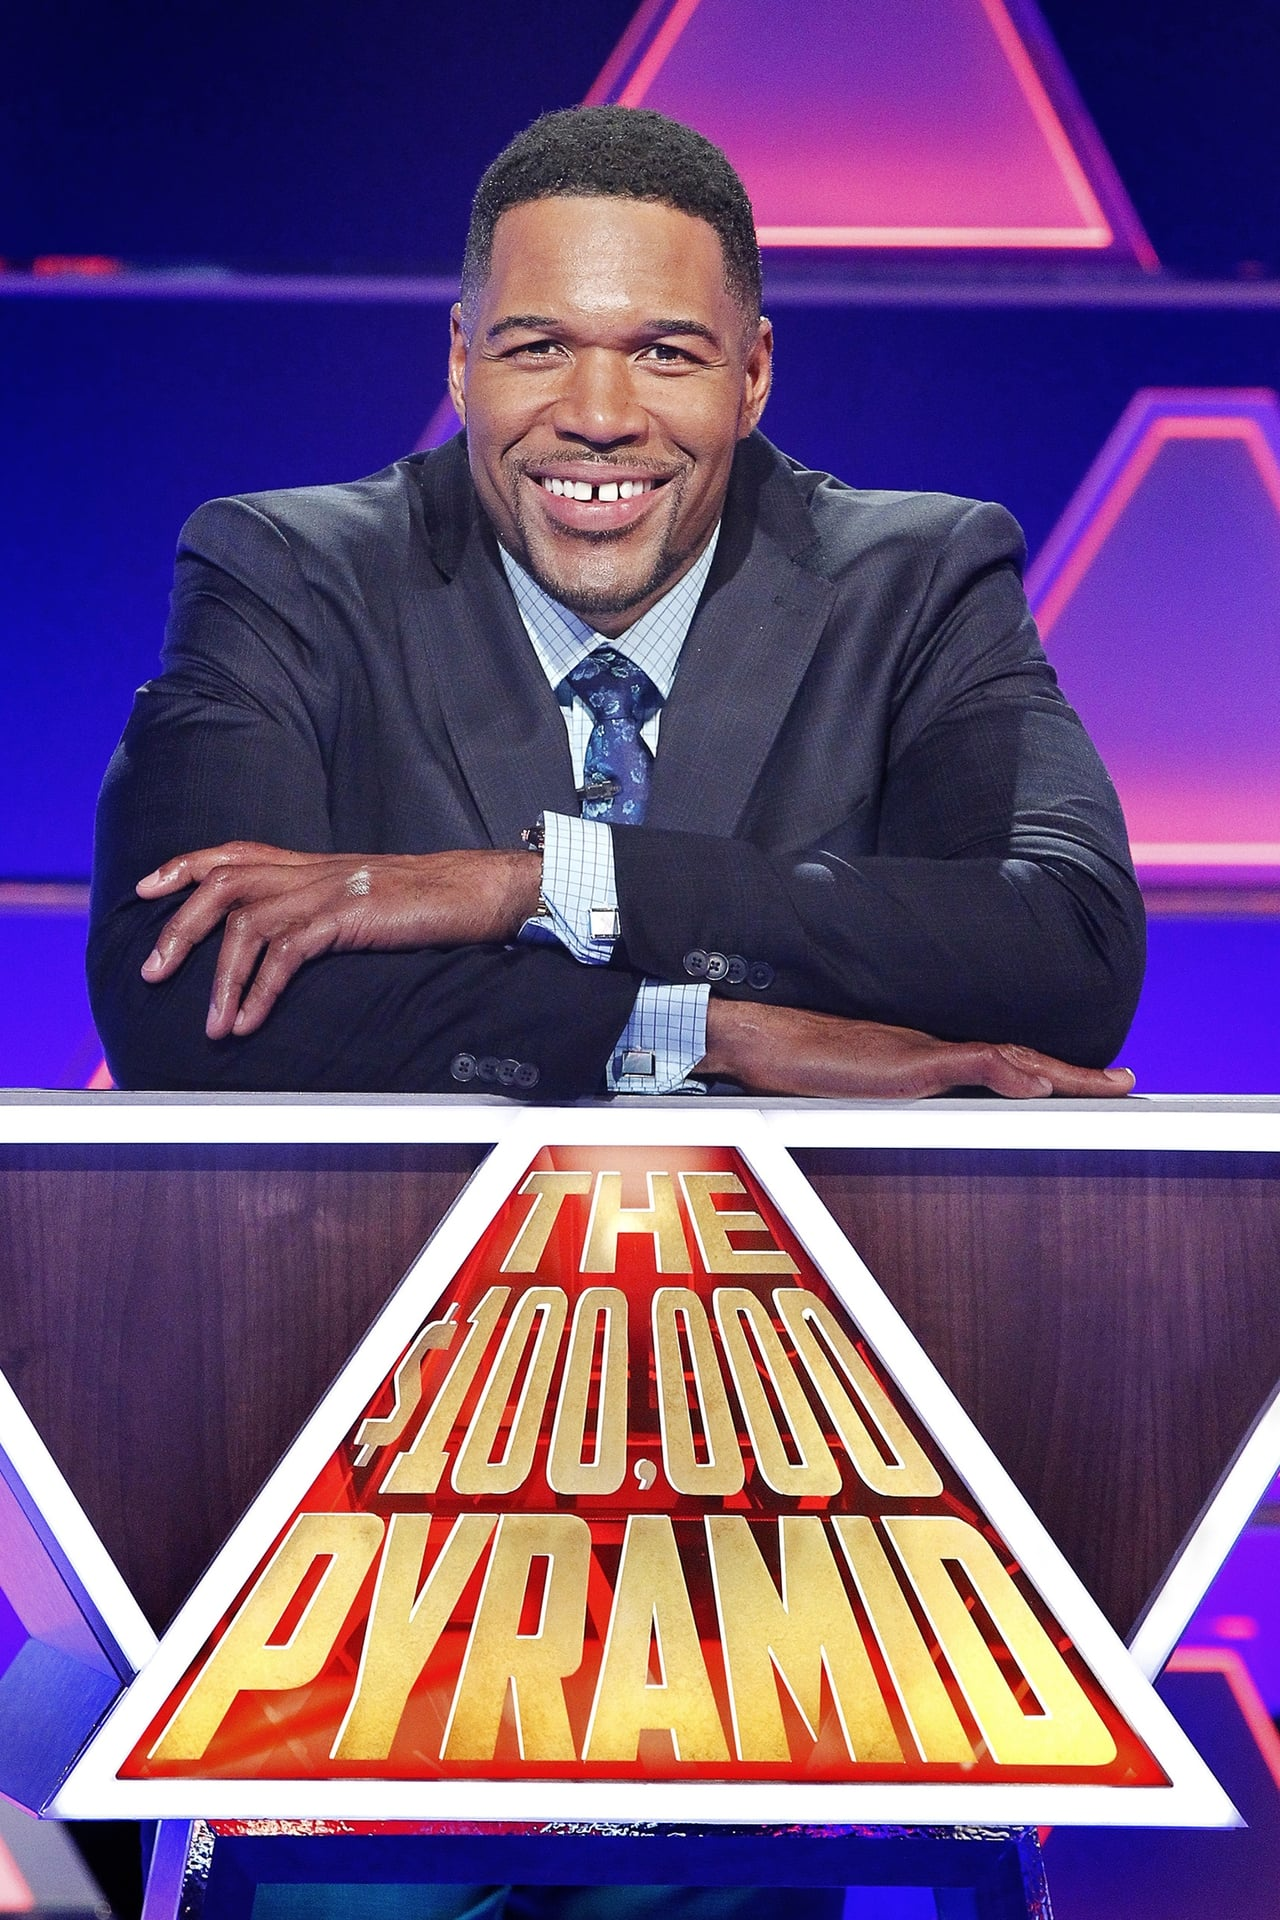 Putlocker The $100,000 Pyramid Season 1 (2016)